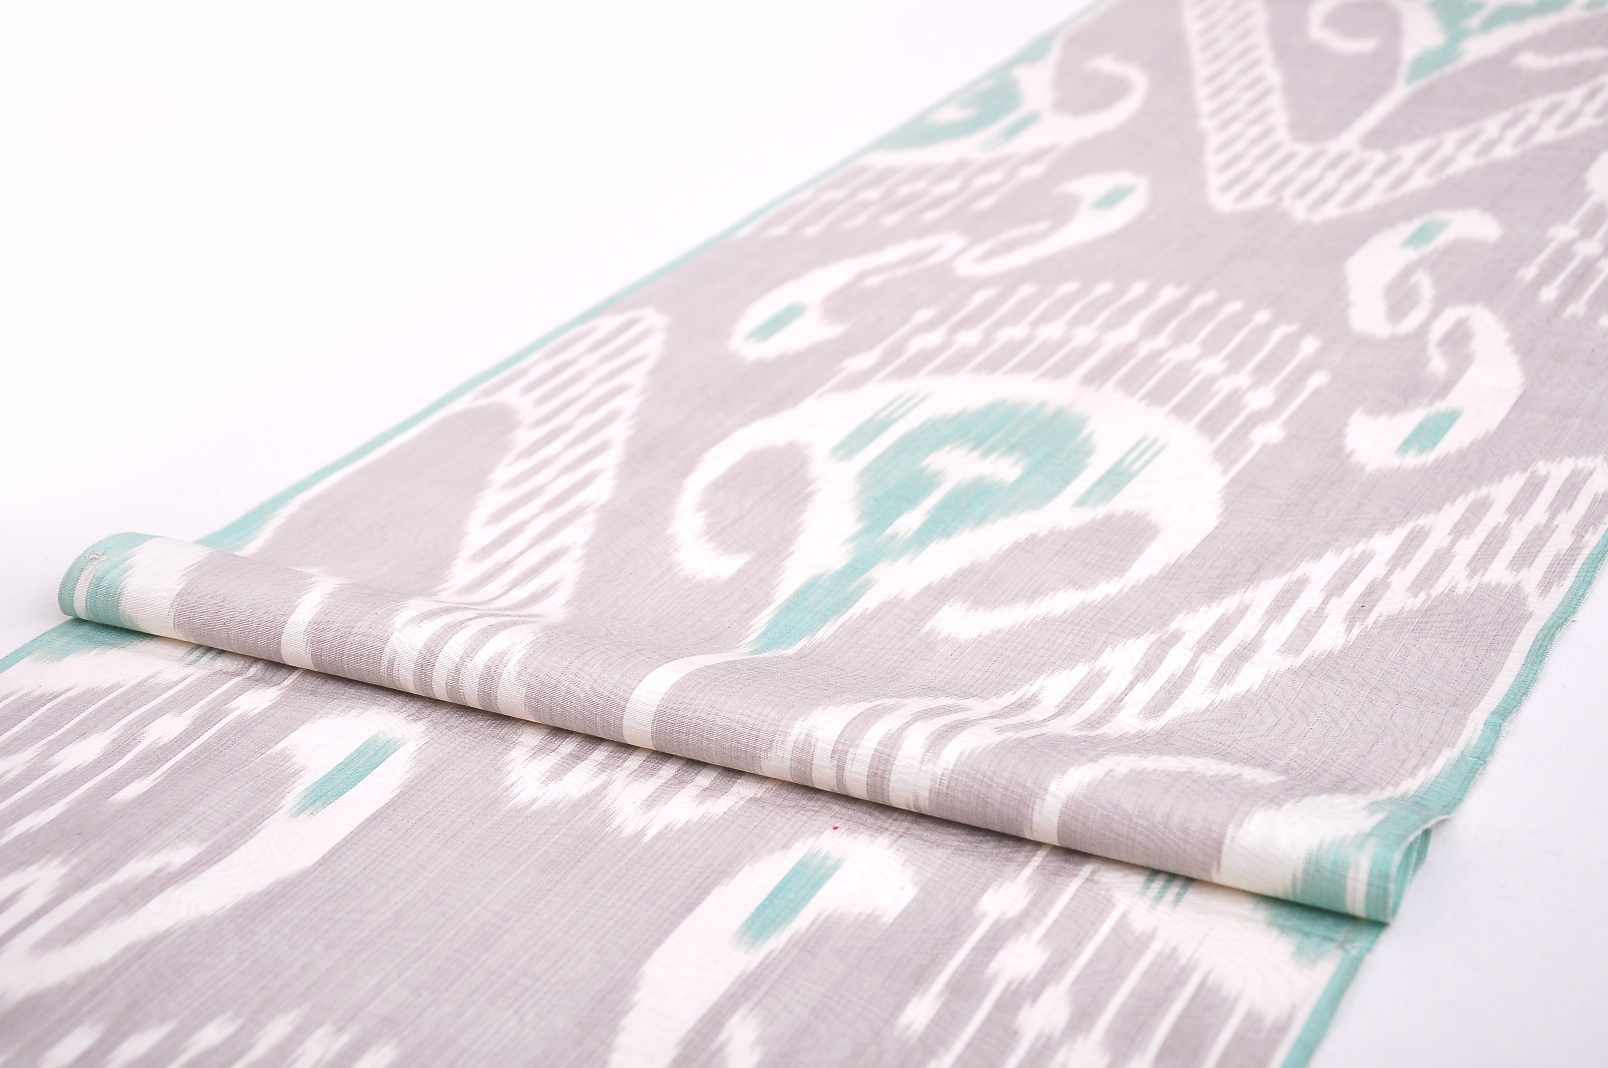 Home Decor Fabrics By The Yard: Home Decor Silk Fabric By The Yard Discount Sale